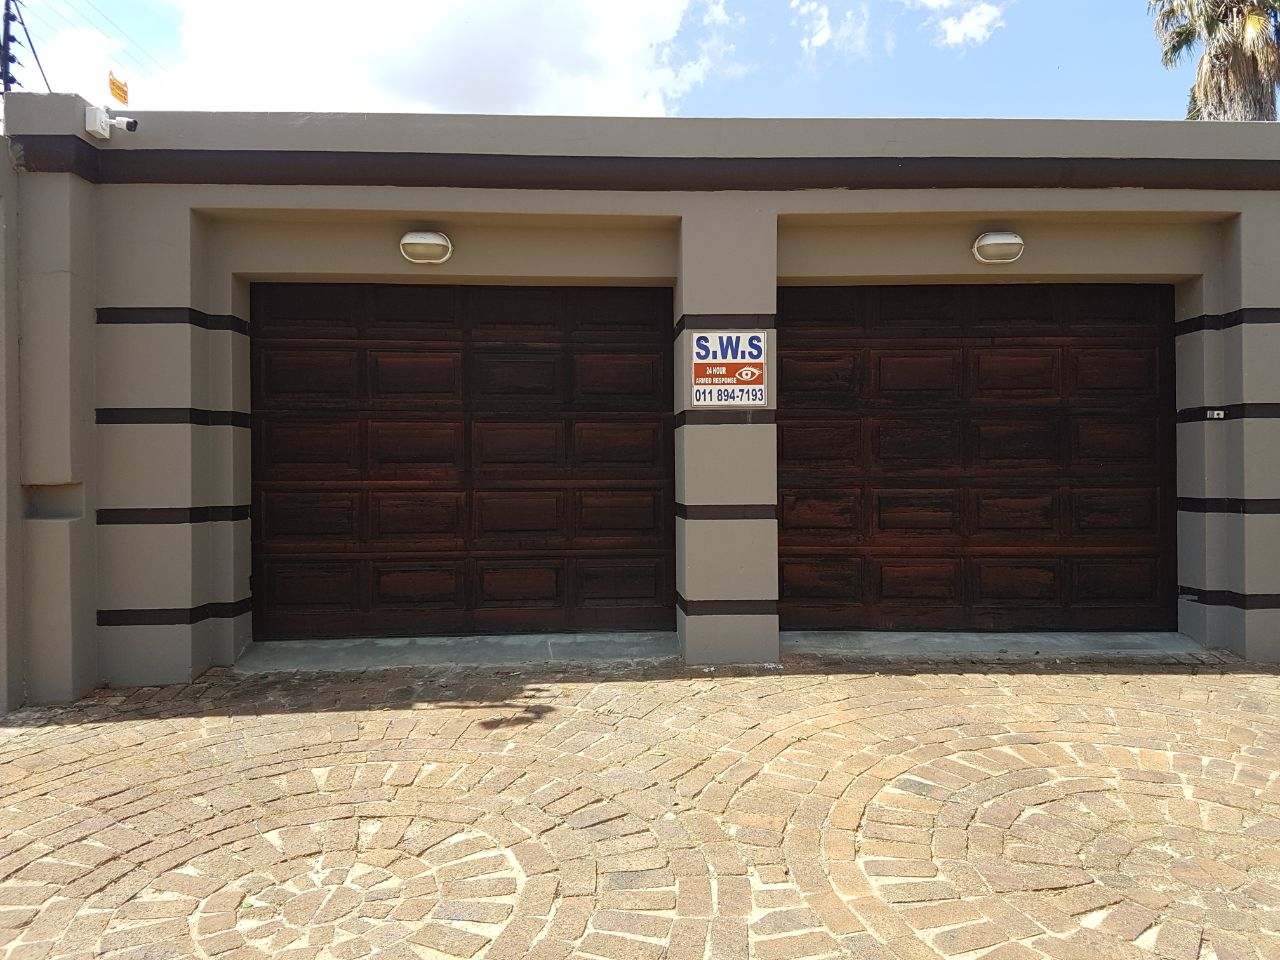 2 Bedroom Double Storey Executive House To Let in Beyerspark, Boksburg